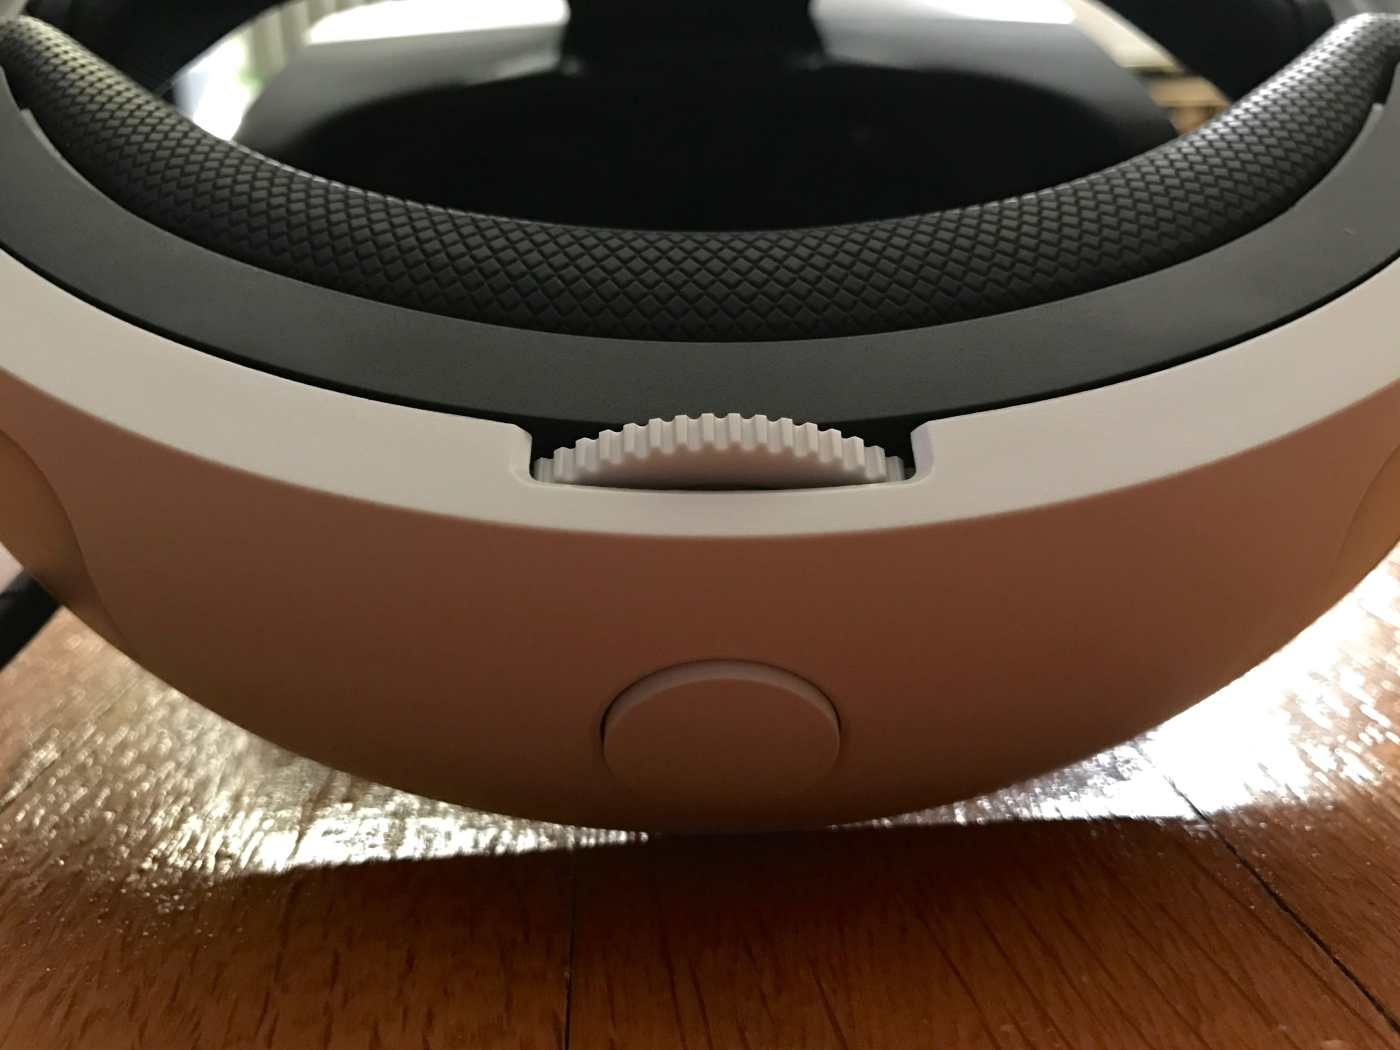 PSVR headband release button and adjustment dial